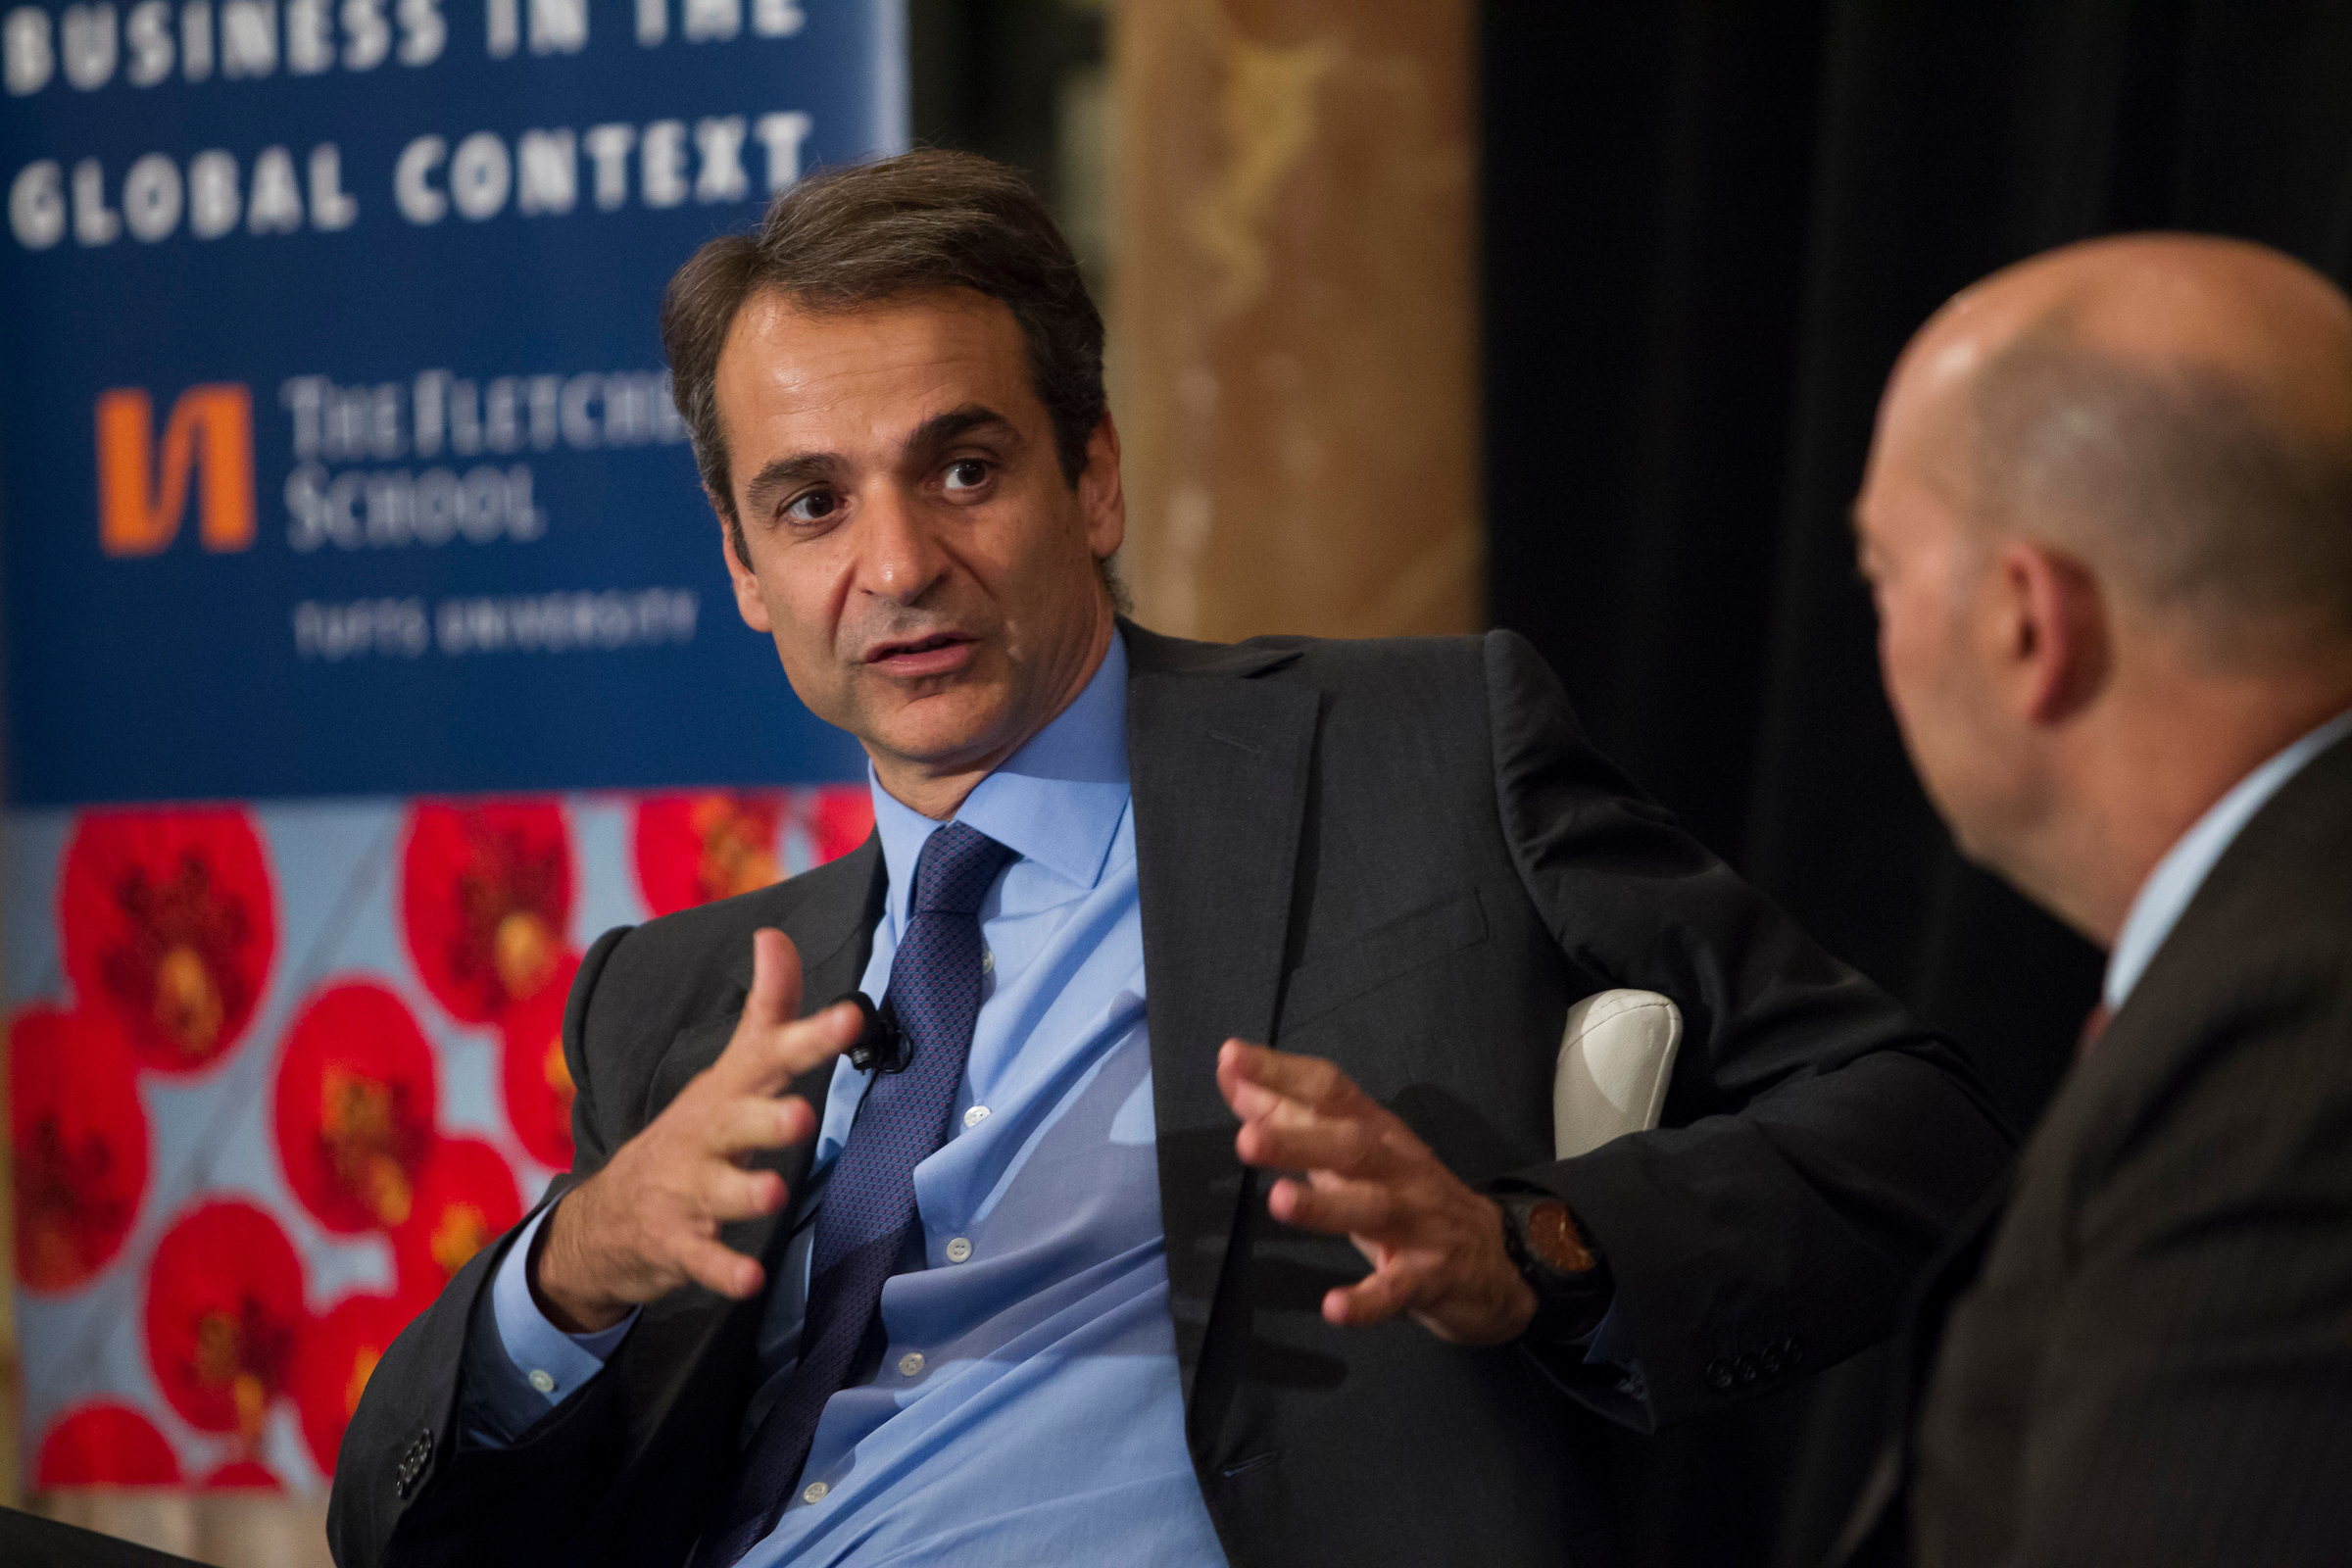 """10/13/2016 - Boston, Mass. - James Stavridis, Dean of The Fletcher School at Tufts University (R) chats with Kyriakos Mitsotakis, President, New Democracy during the """"Greece's Turn? Litmus Test for Europe""""  conference inside the Fairmont Copley Plaza in Boston. The conference is being hosted by The Fletcher School. (Matthew Healey for Tufts University)"""